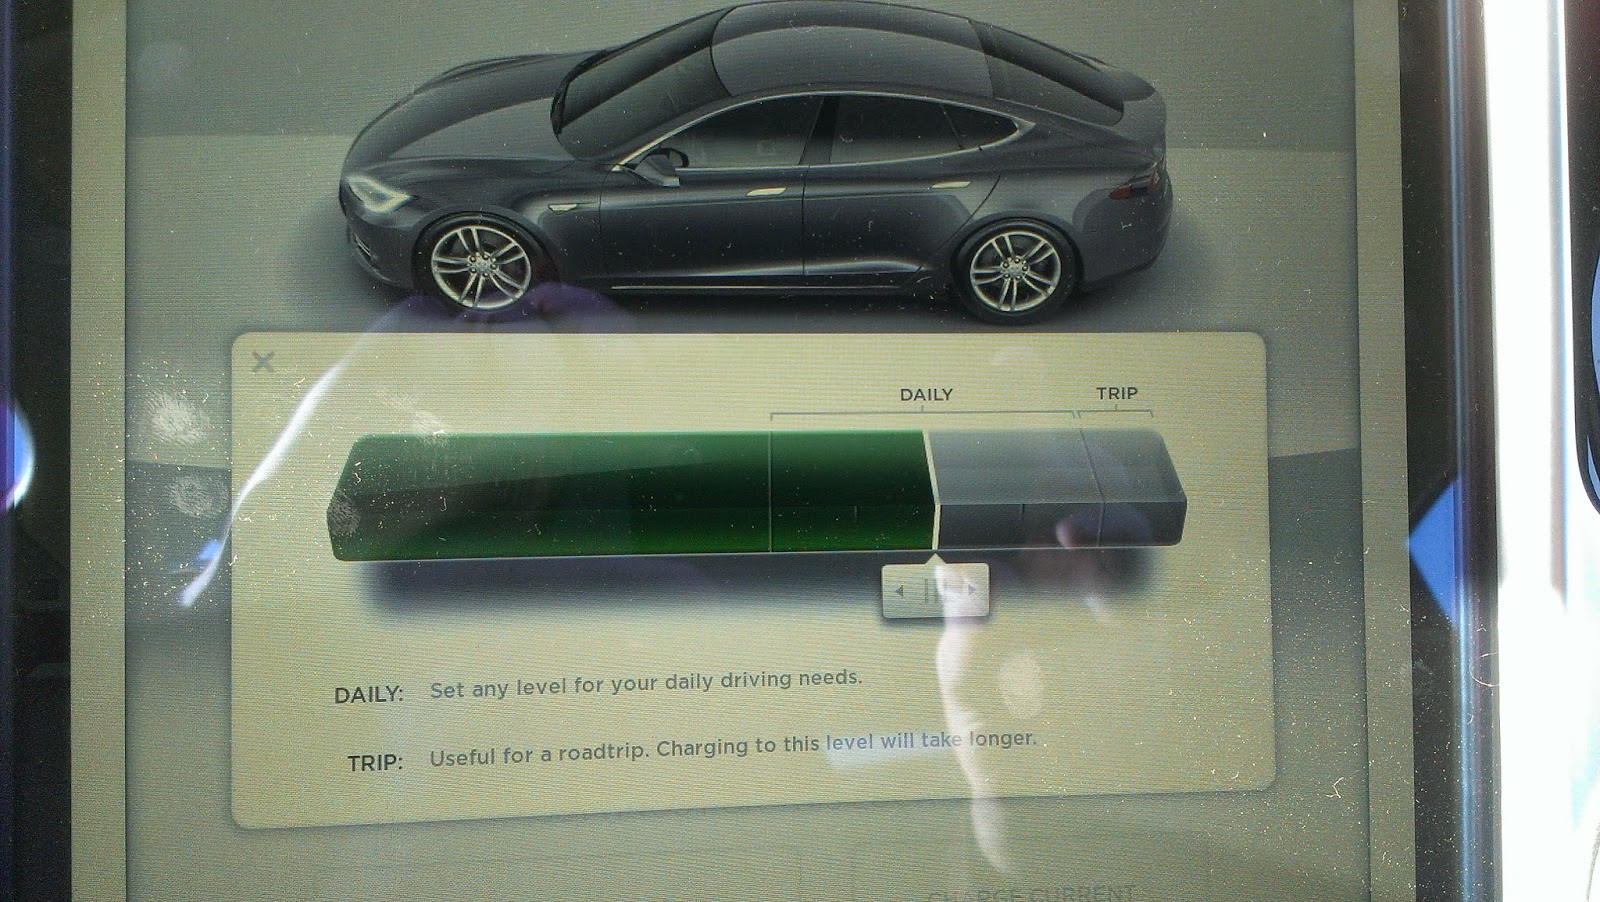 You See Tesla Lets Manage The Amount Of Battery That Use Decide If Want To Charge 100 Your Or Less Depending On Needs